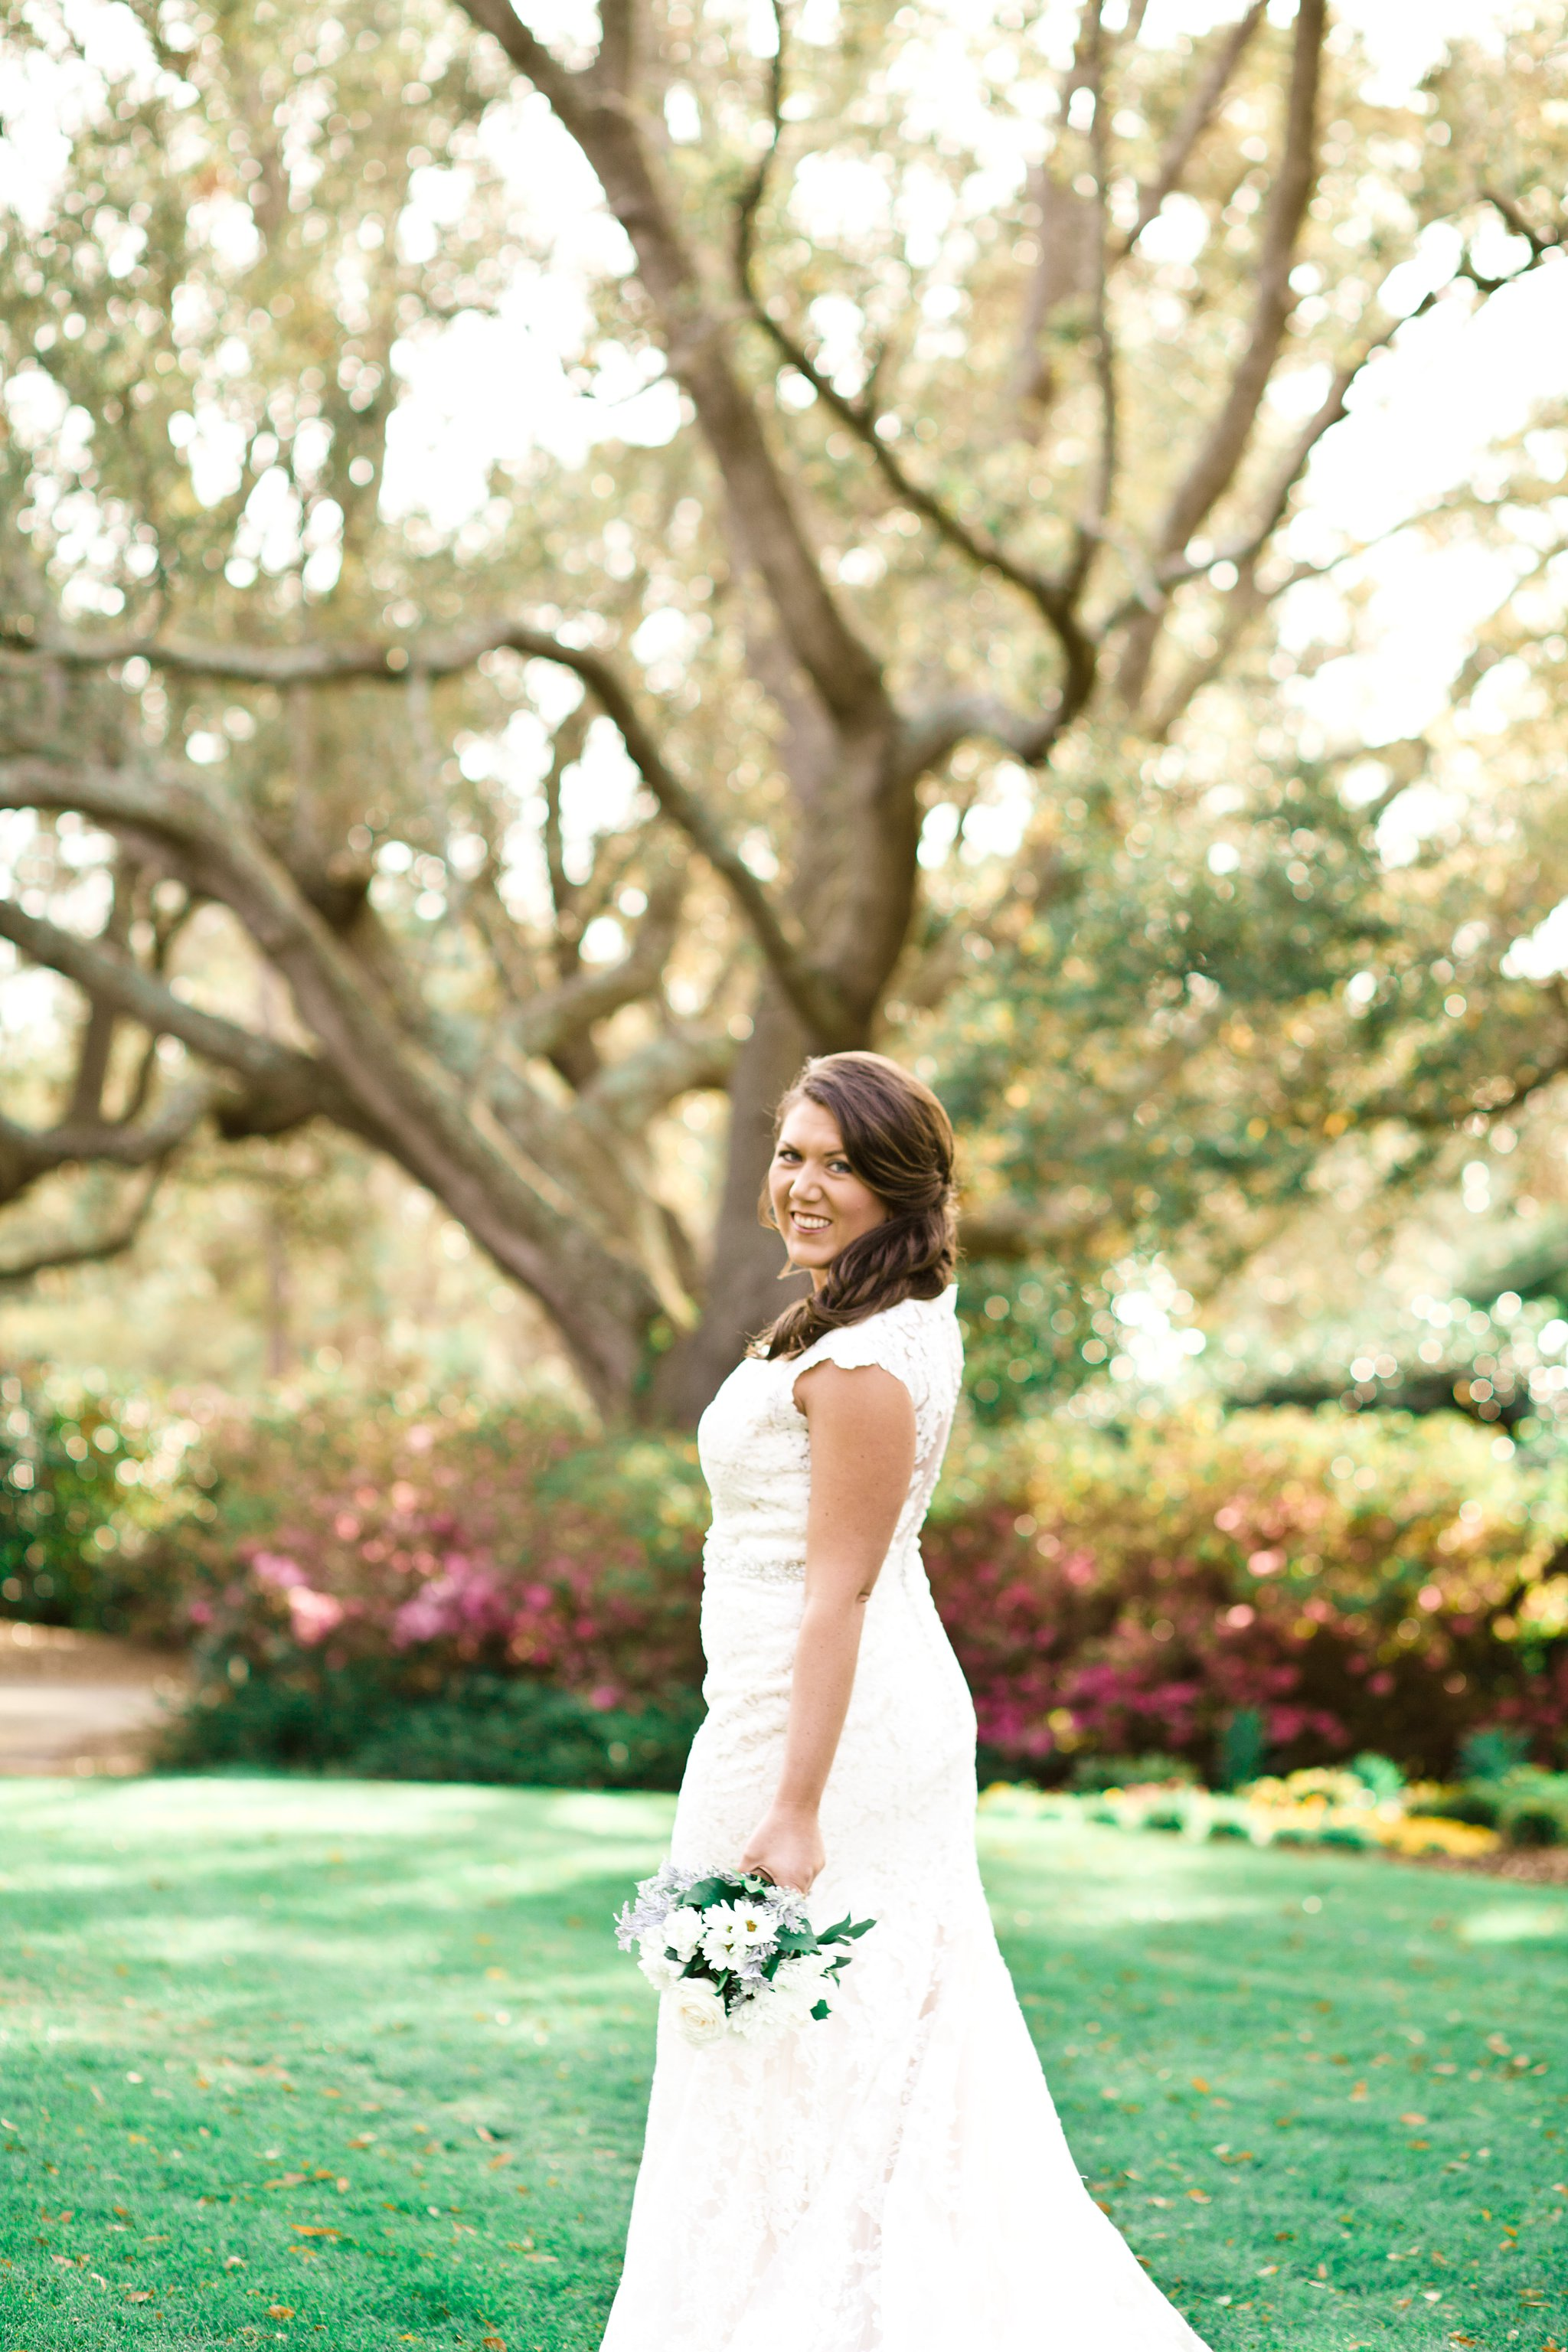 litchfield-golf-country-club-bridal-session-pawleys-island-sc-photos_0113.jpg